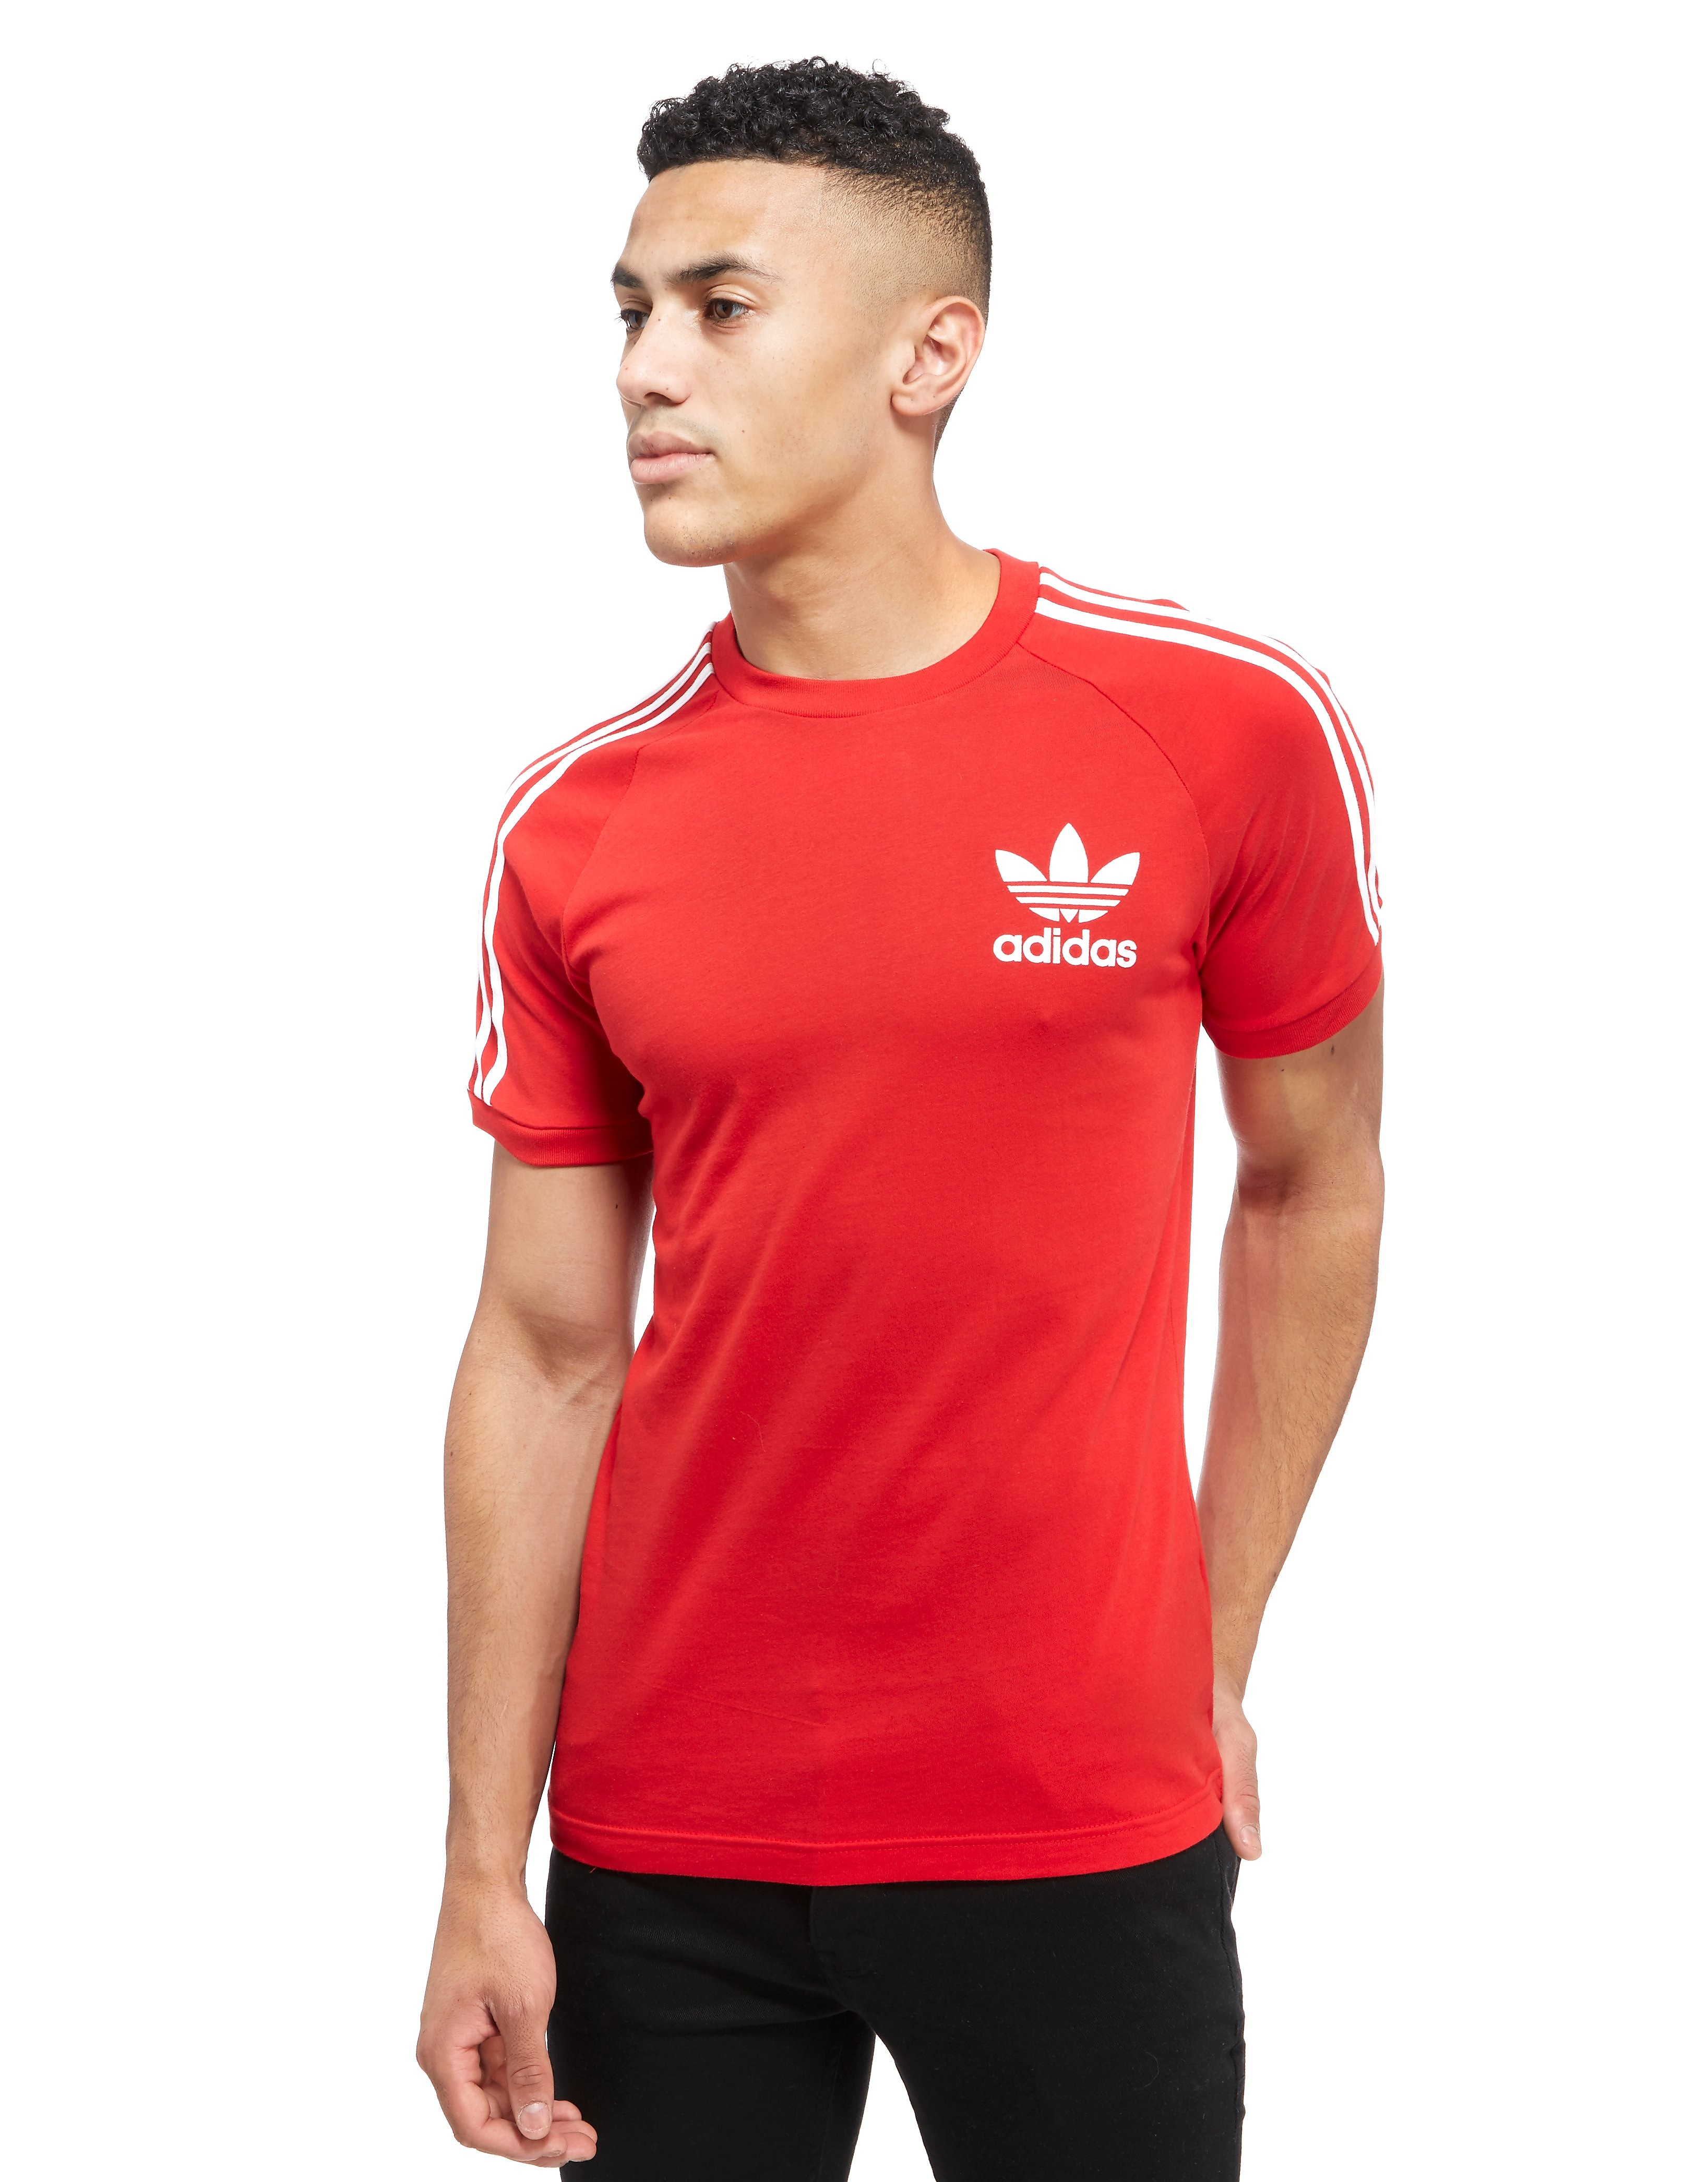 adidas Originals Originals California T-Shirt